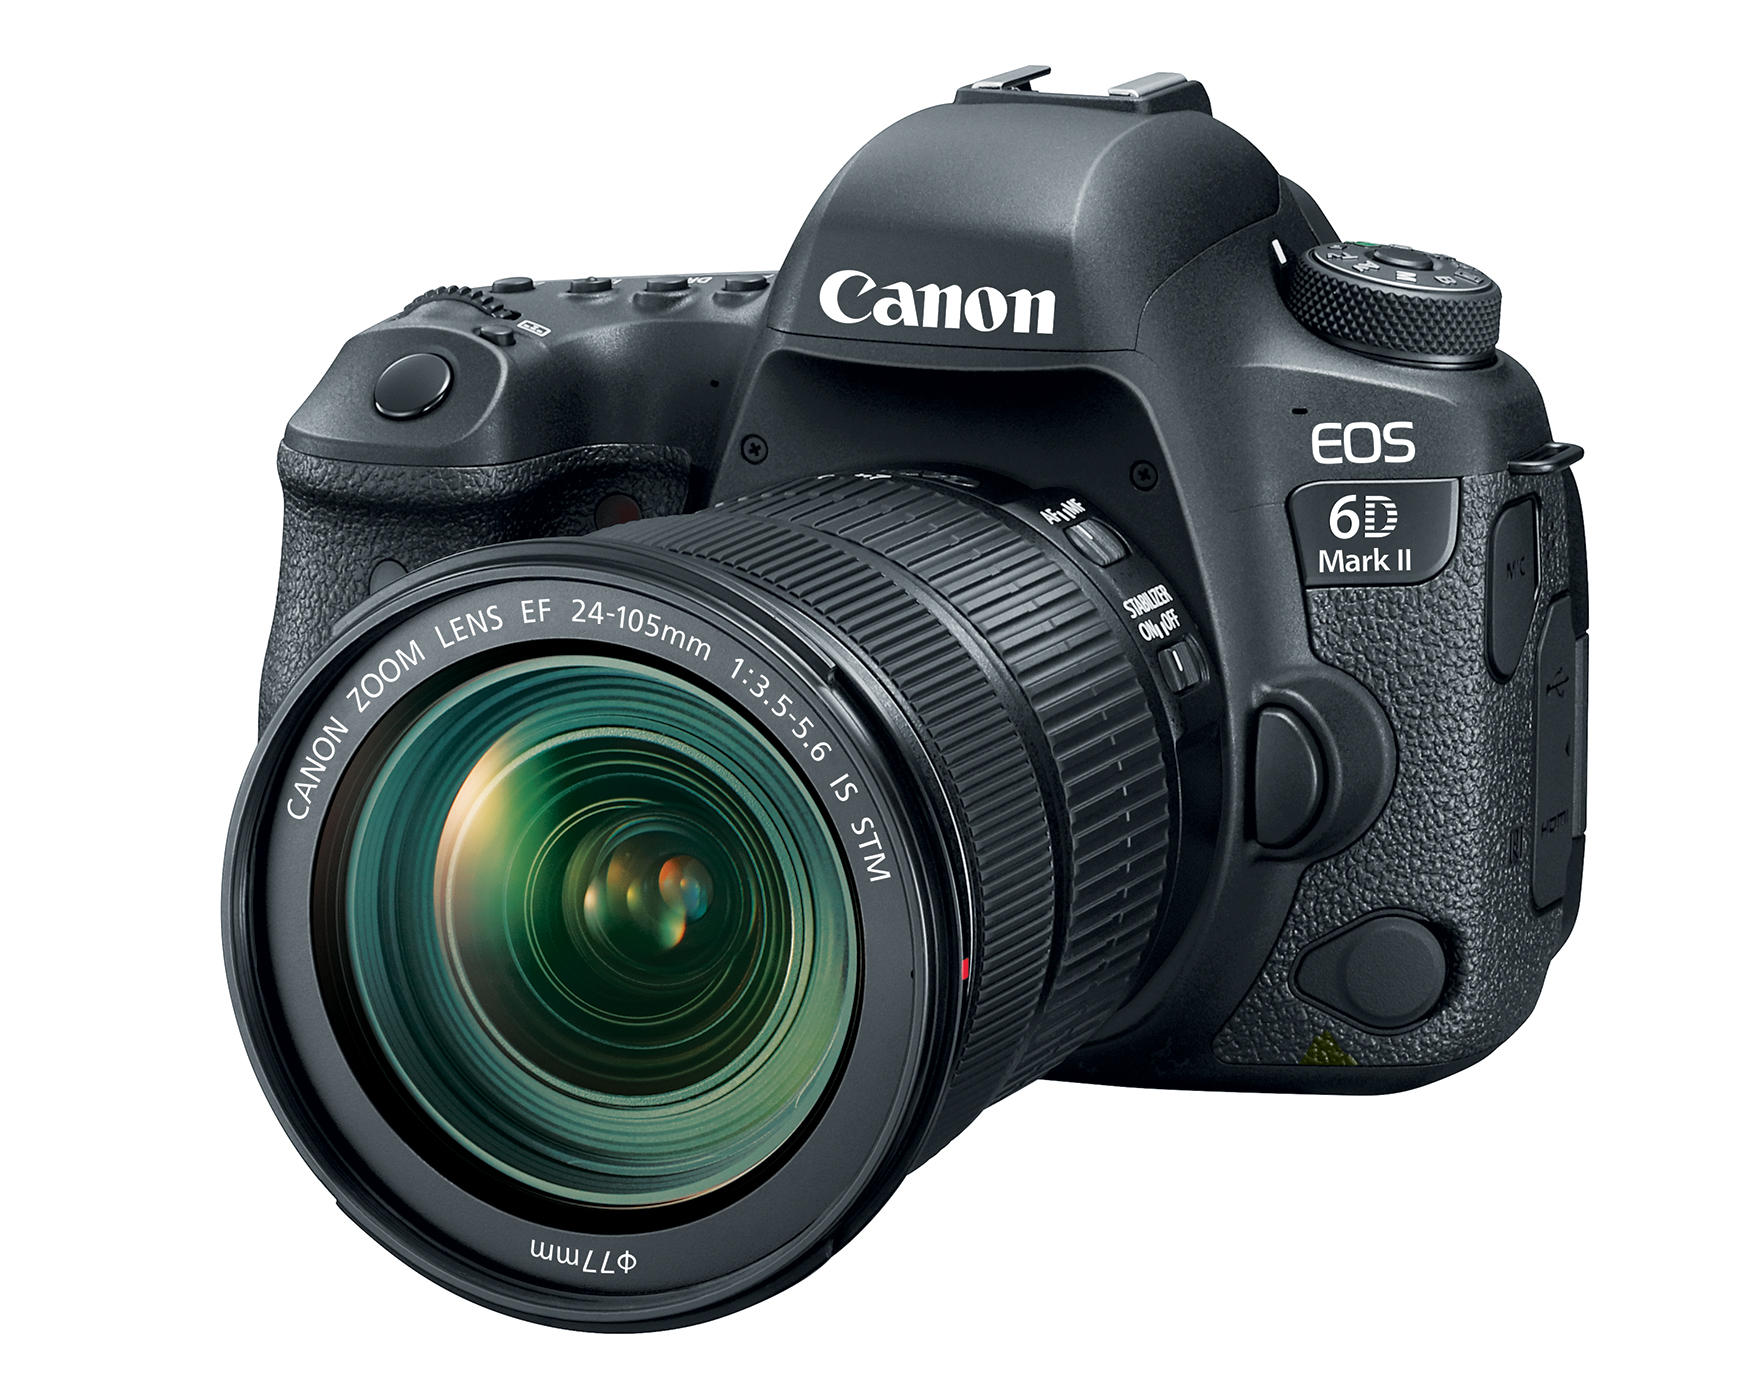 Canon EOS 6D Mark II (with 24-105mm IS USM lens)